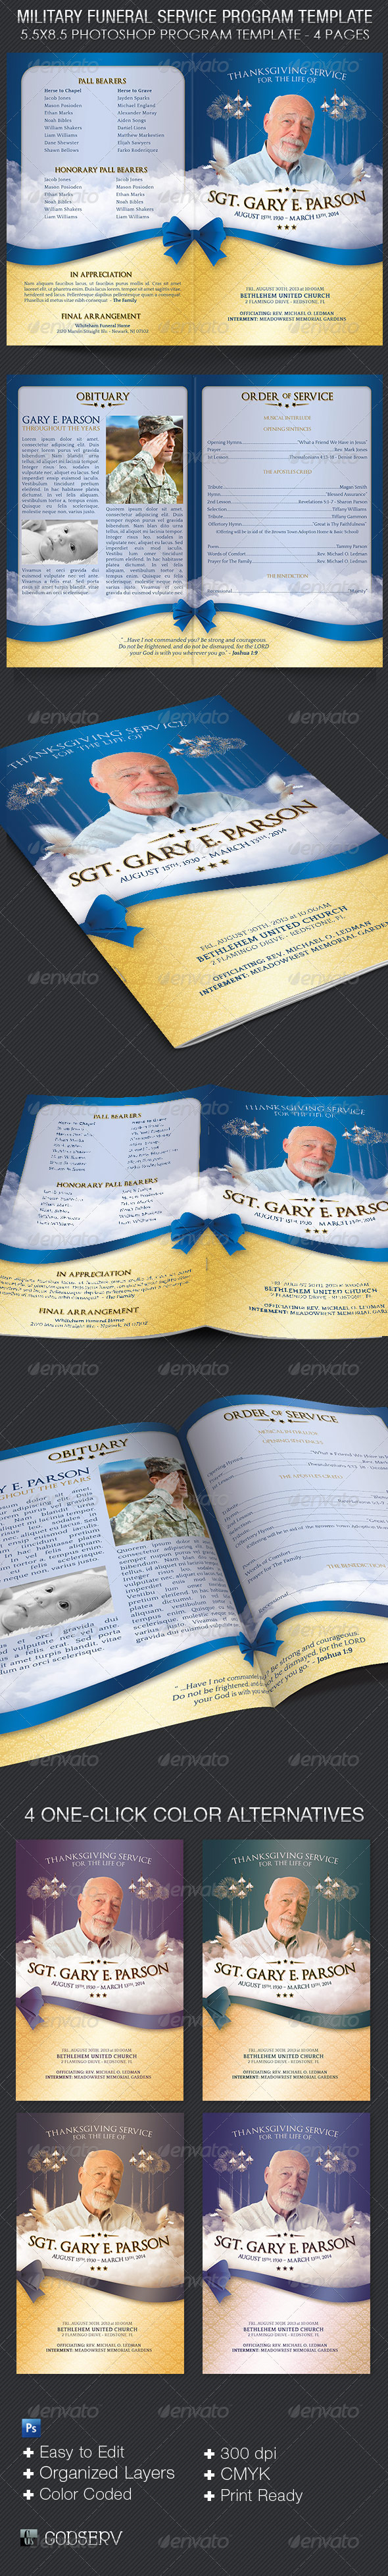 GraphicRiver Military Funeral Service Program Template 6476256